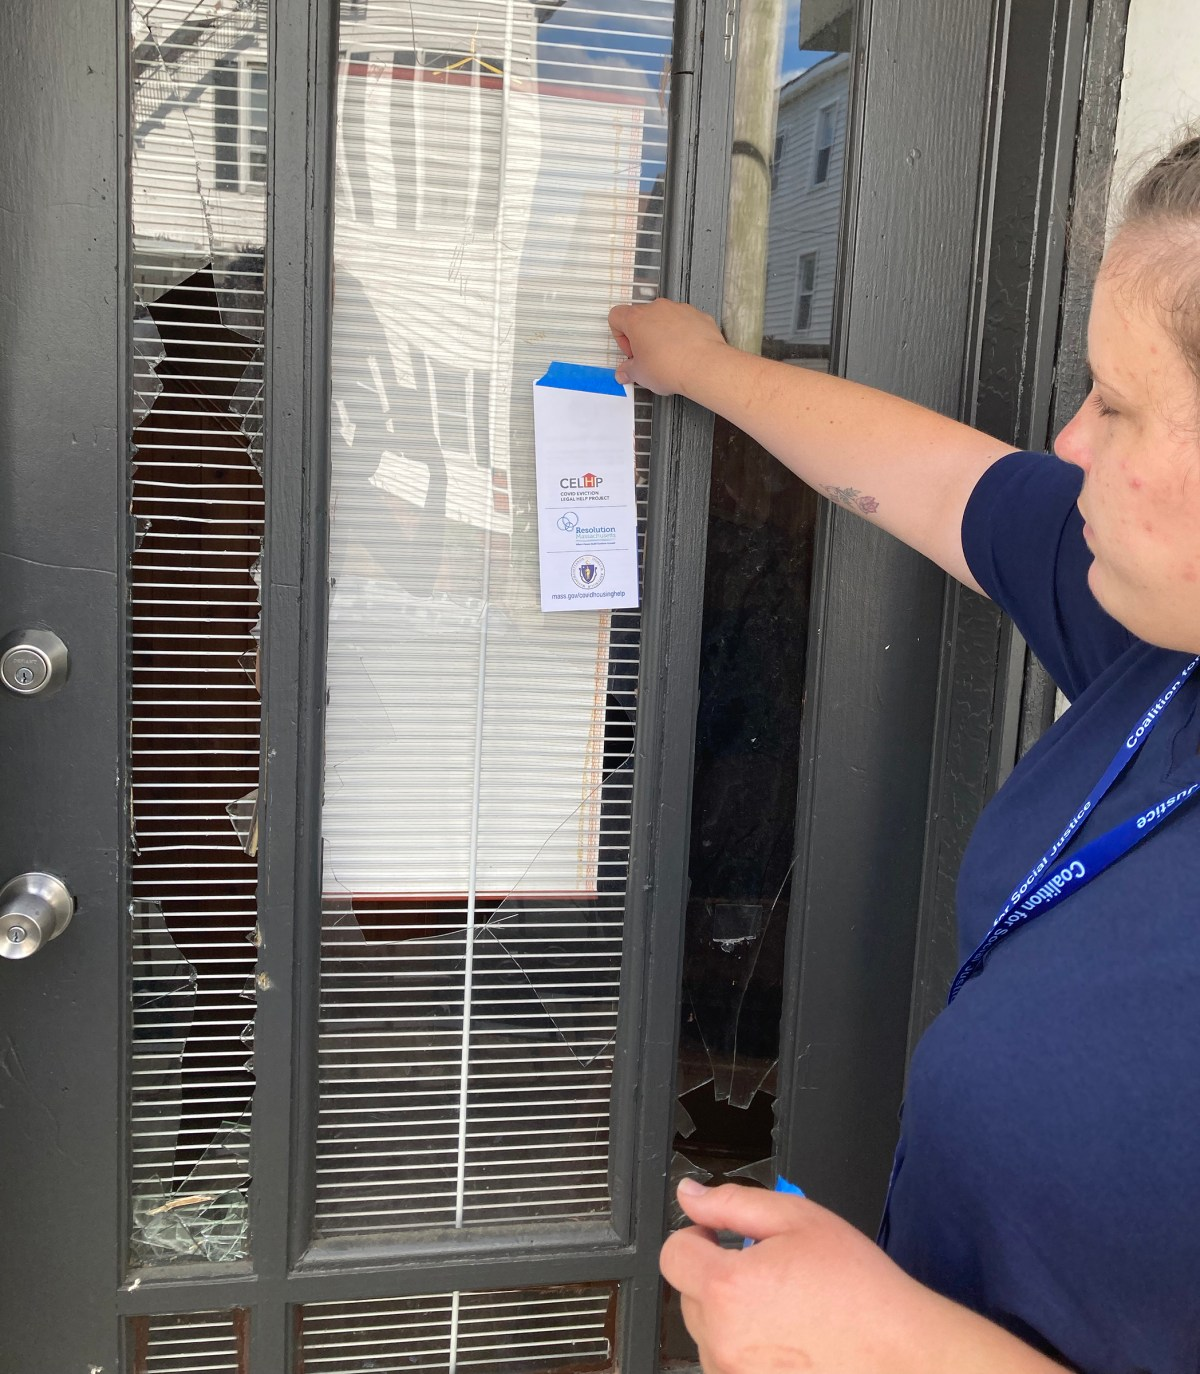 Sigute Meilus, with the Coalition for Social Justice, posts information for legal services and rental relief on the door of a tenant facing eviction.